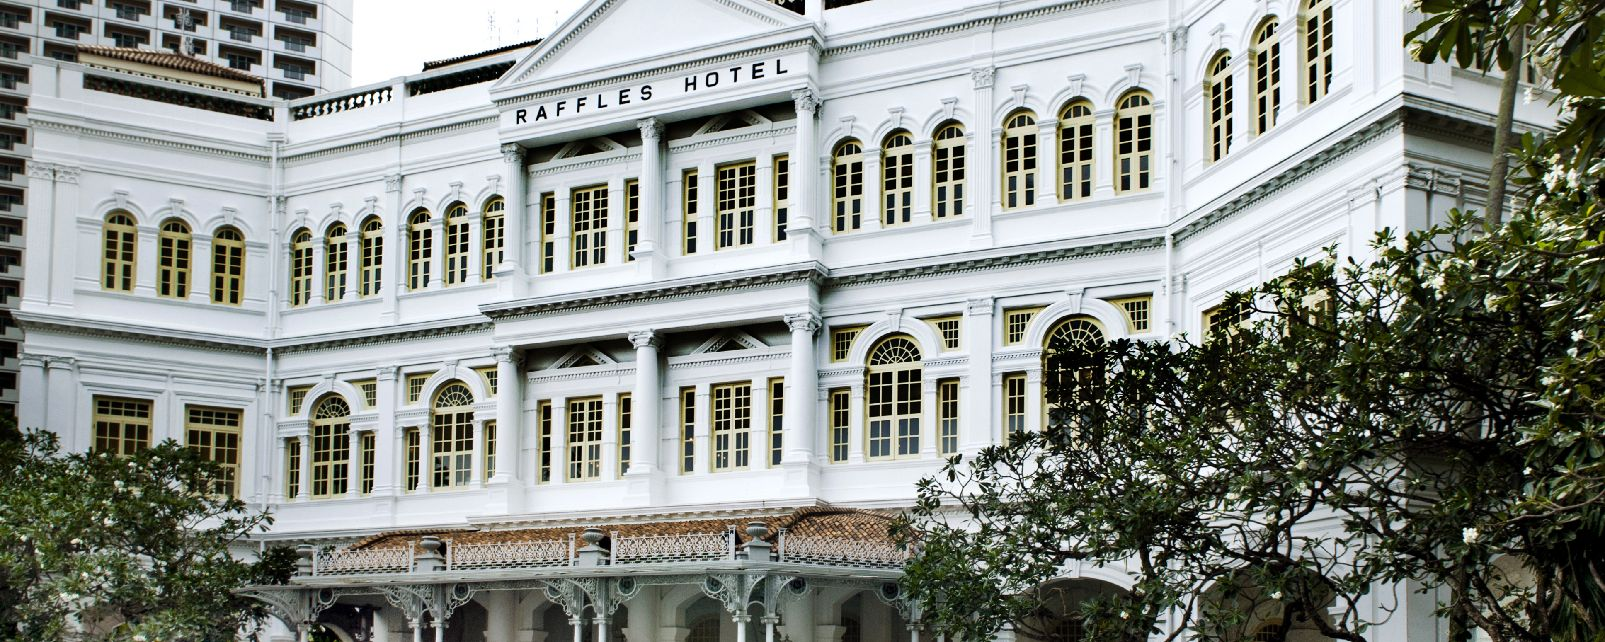 Le Long bar du Raffles et son Singapore Sling , Singapour